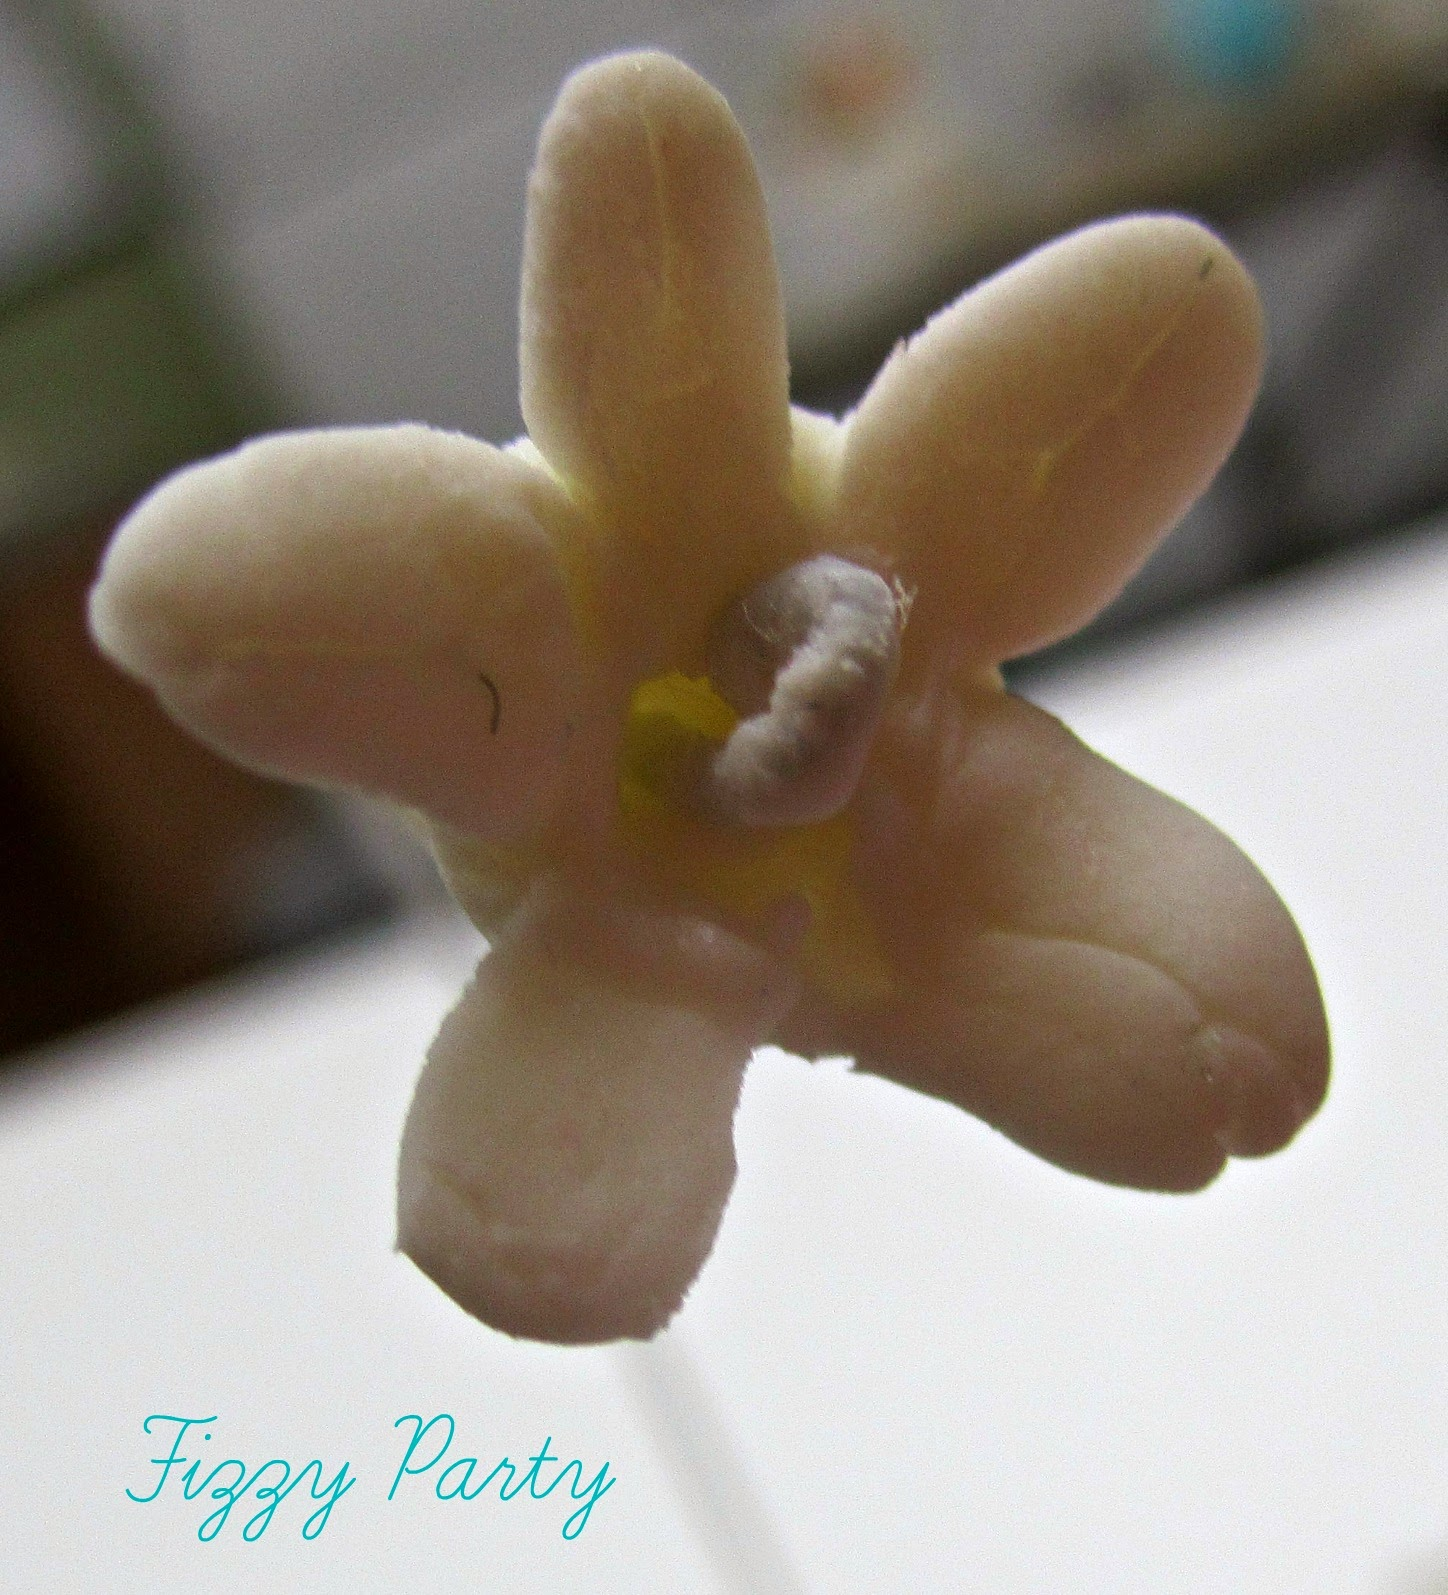 Gum Paste Class, Fizzy Party